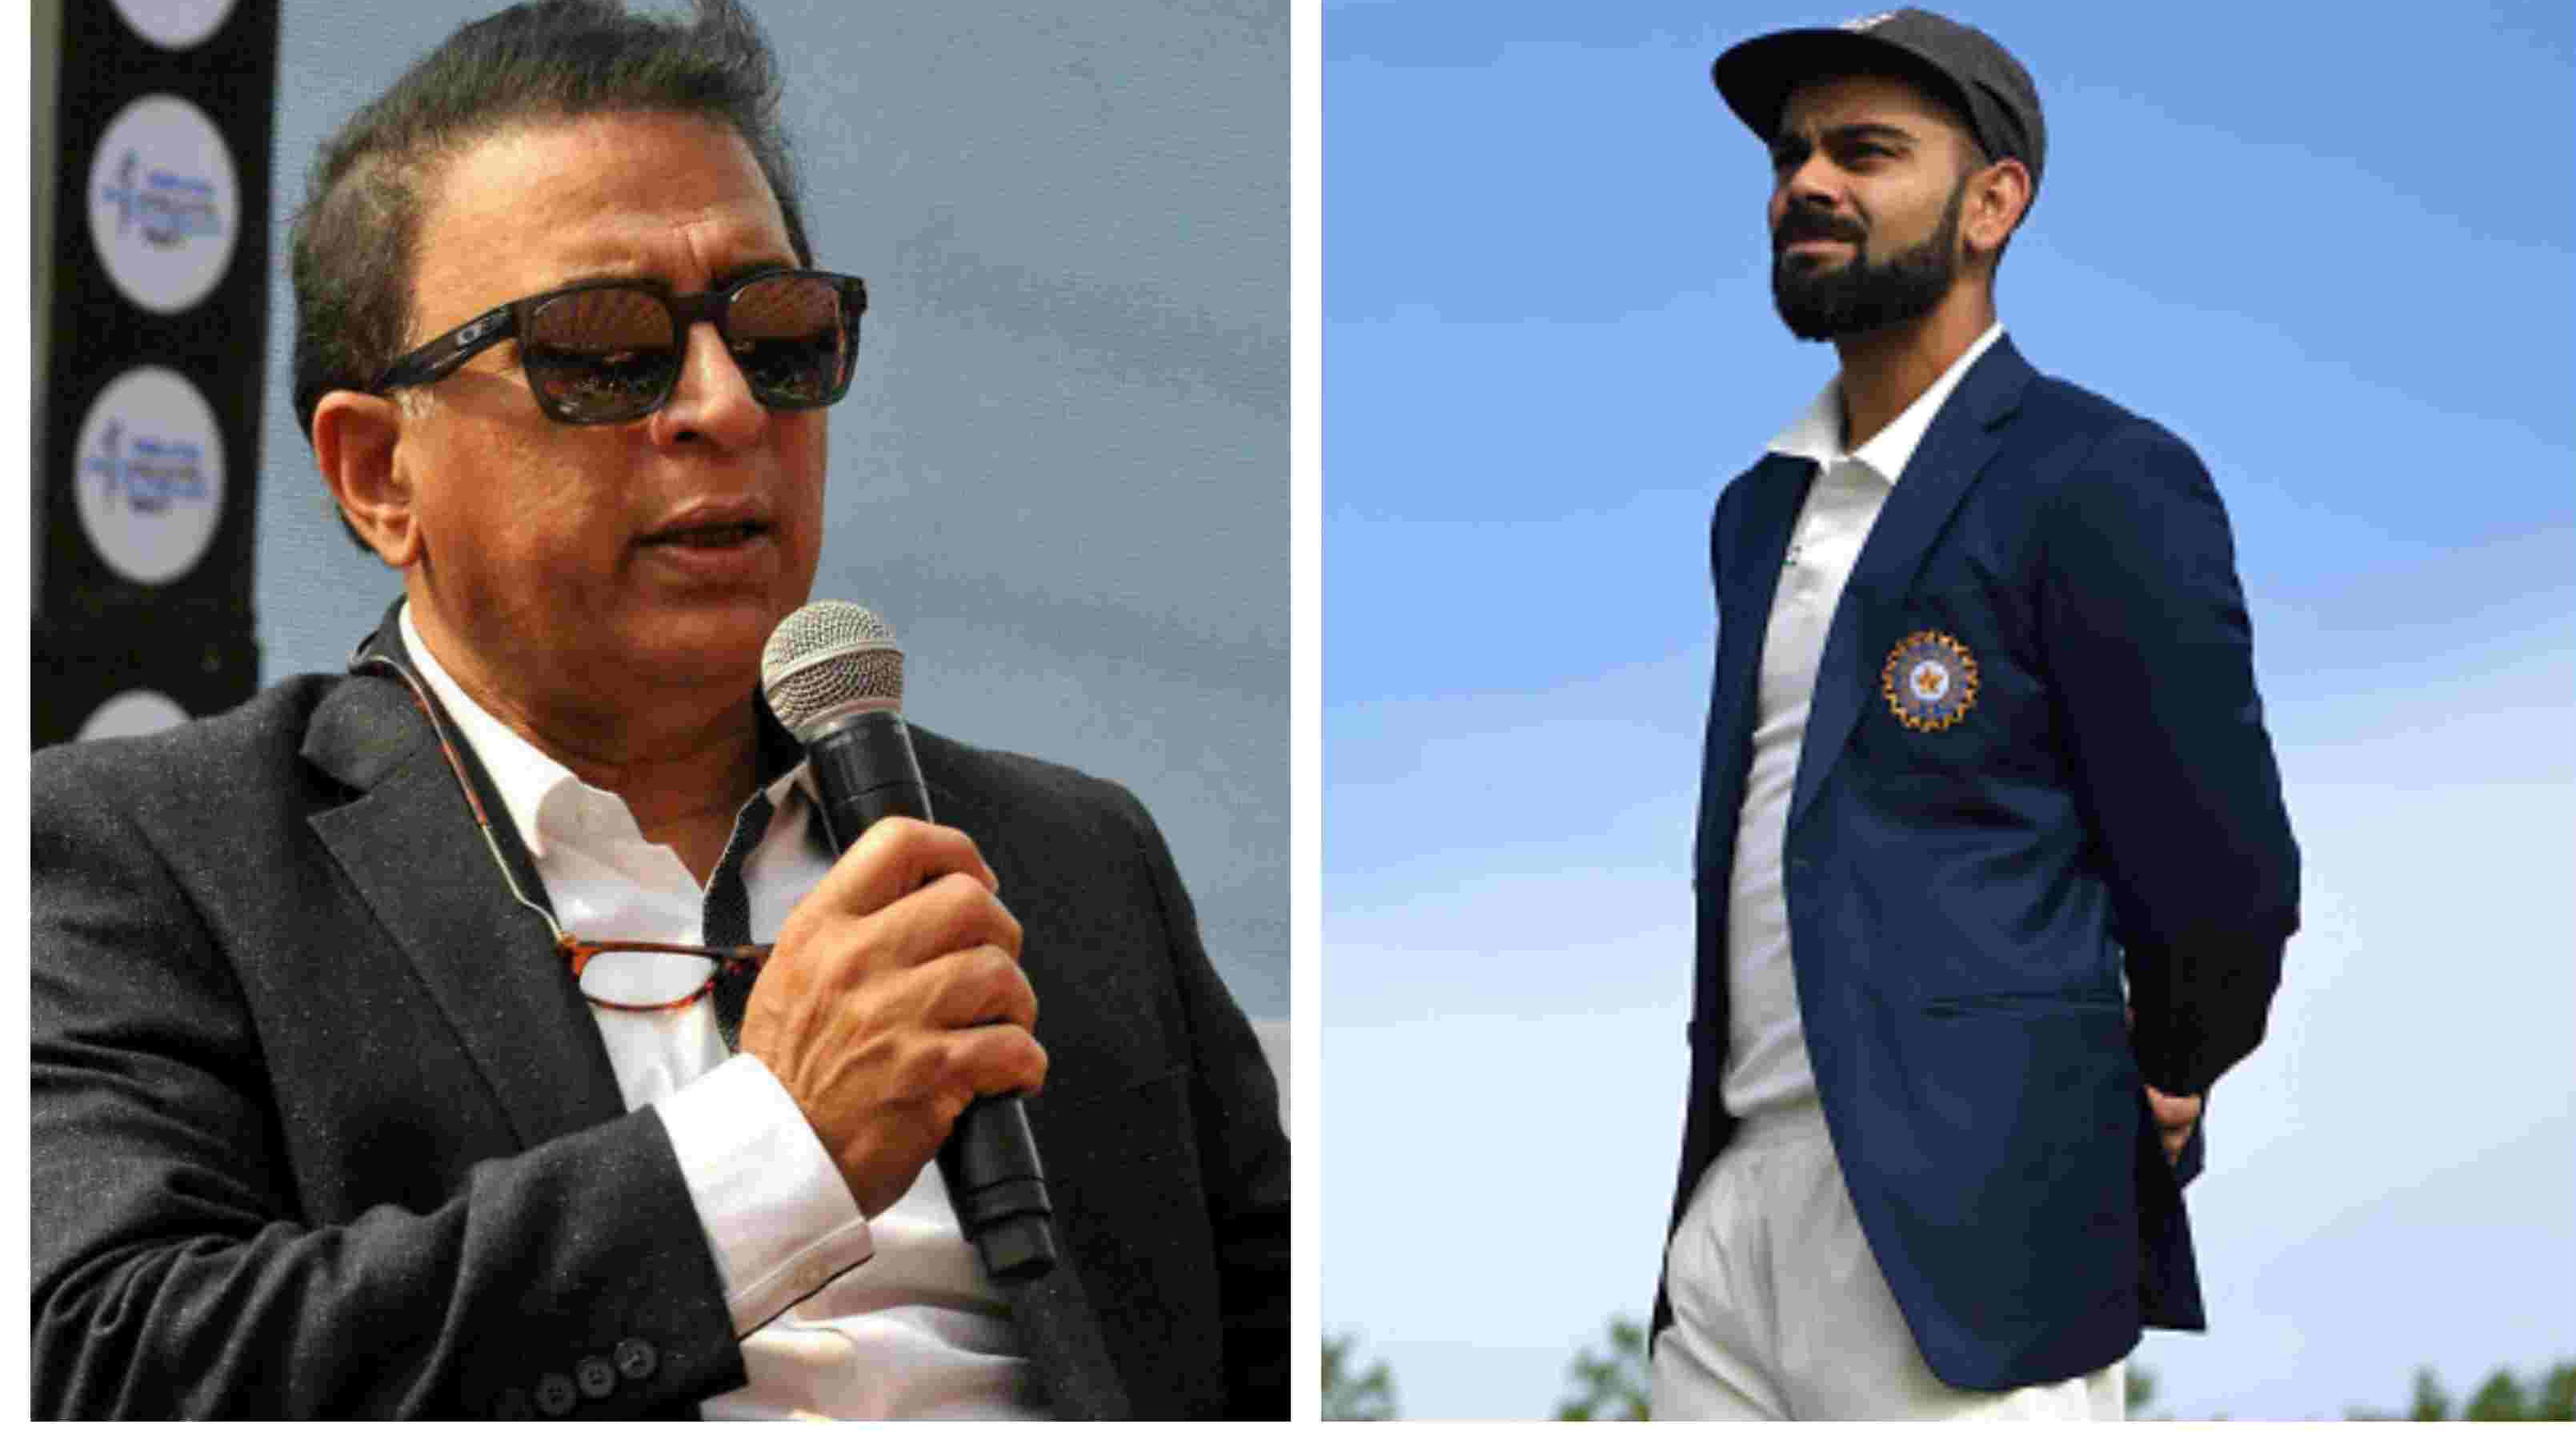 ENG v IND 2018: Sunil Gavaskar questions Virat Kohli's captaincy after India's Test series defeat against England